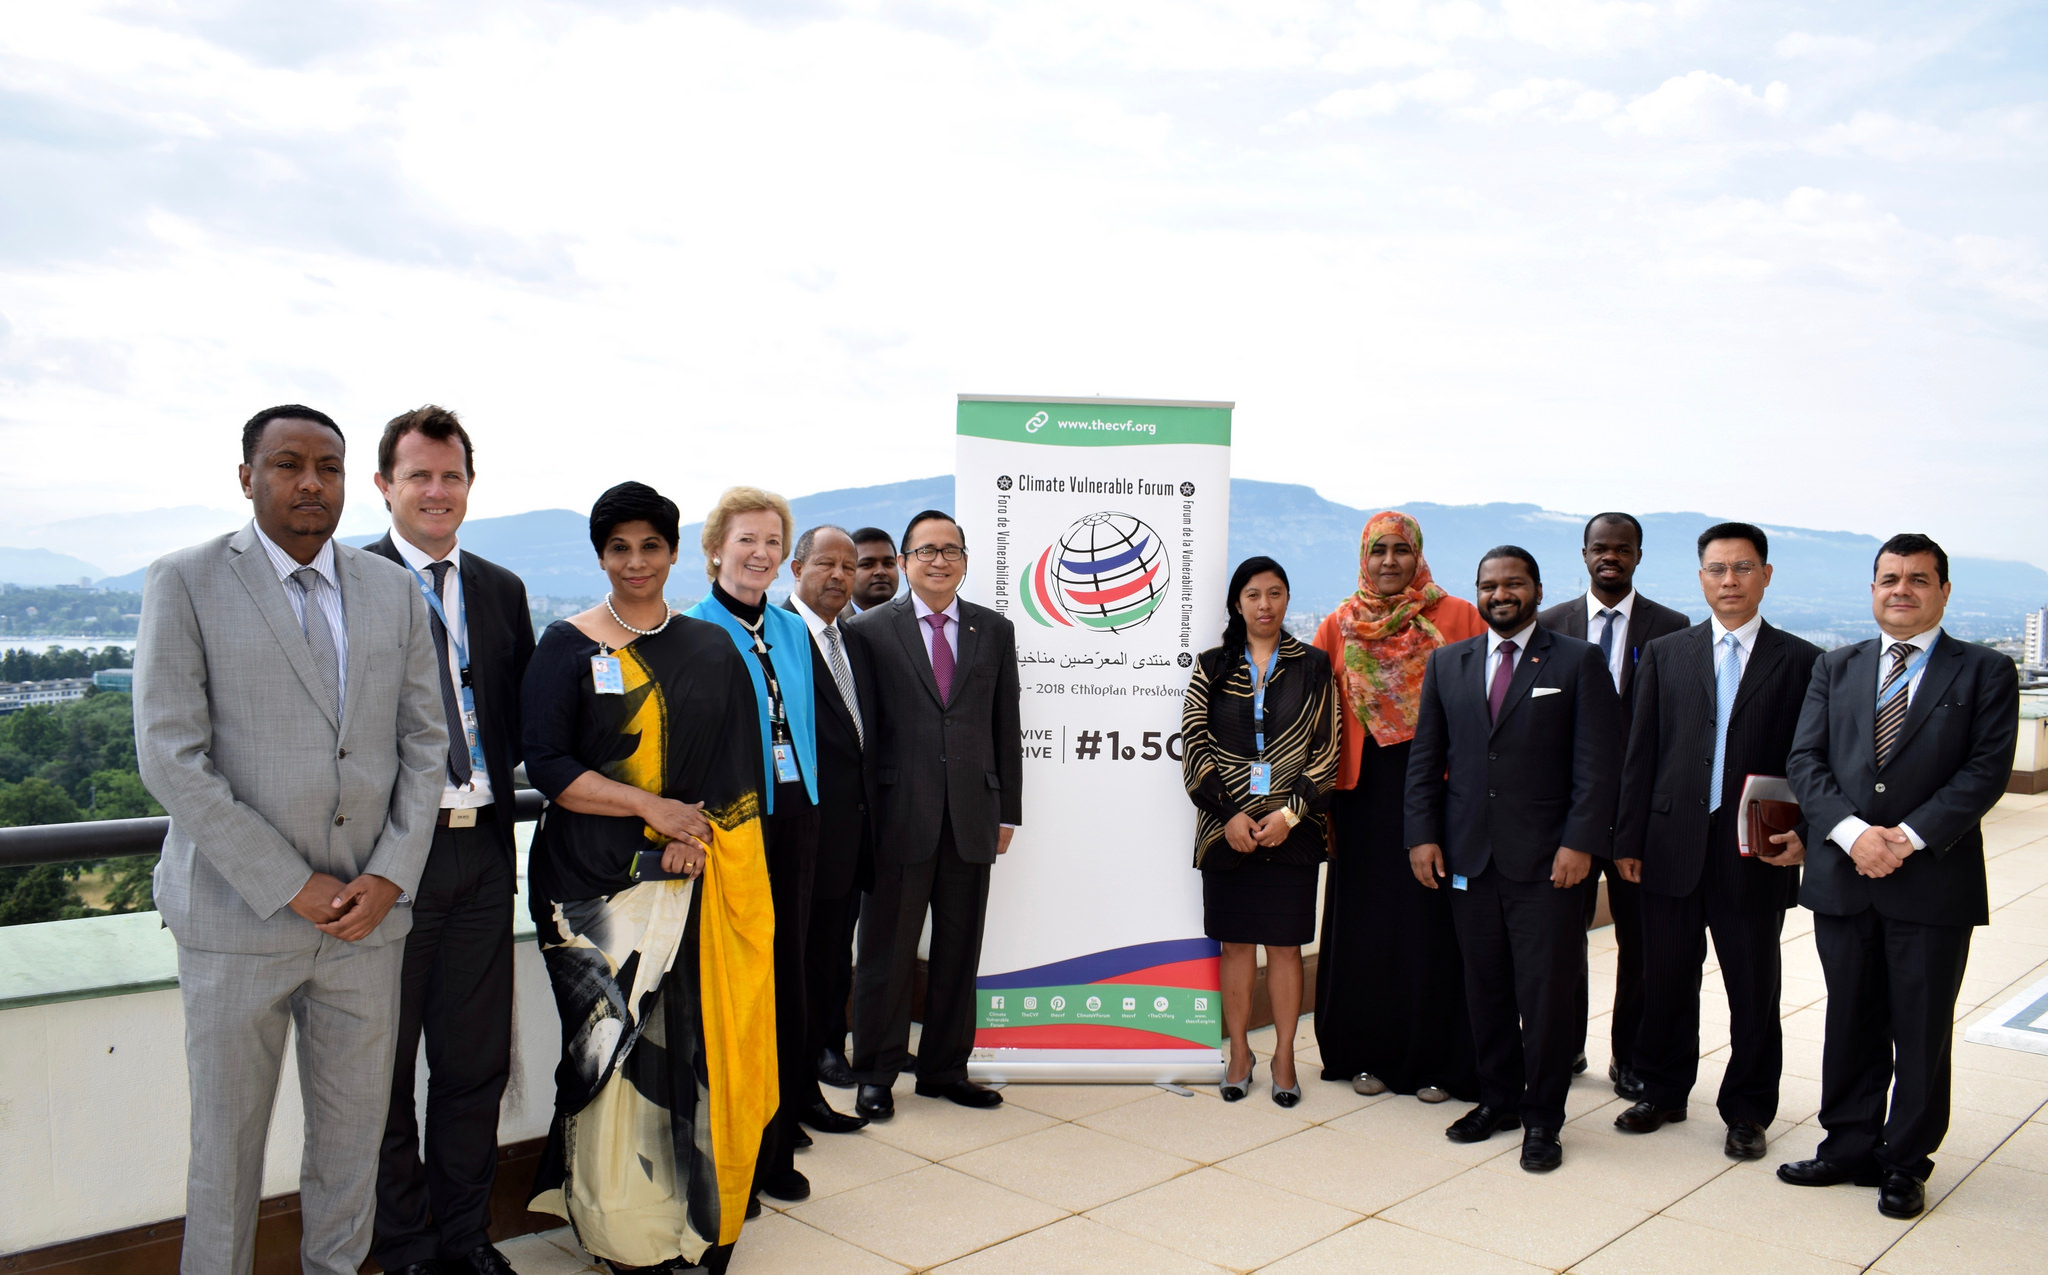 Image of Climate Vulnerable Forum leaders and members.